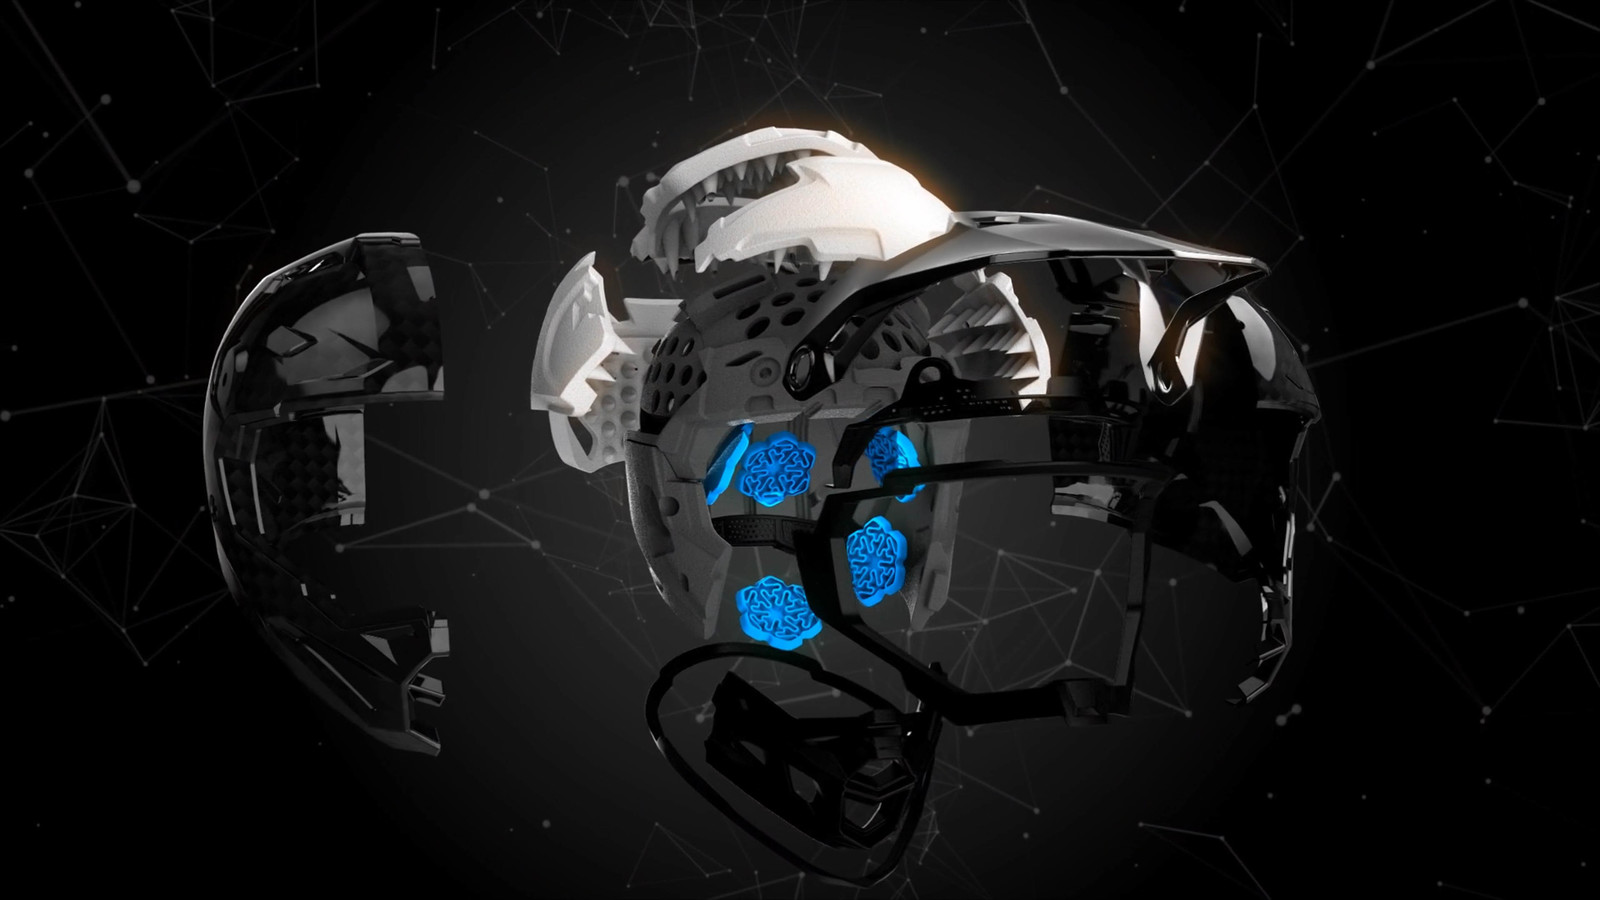 Multiple layers and technology inside the Formula Helmet